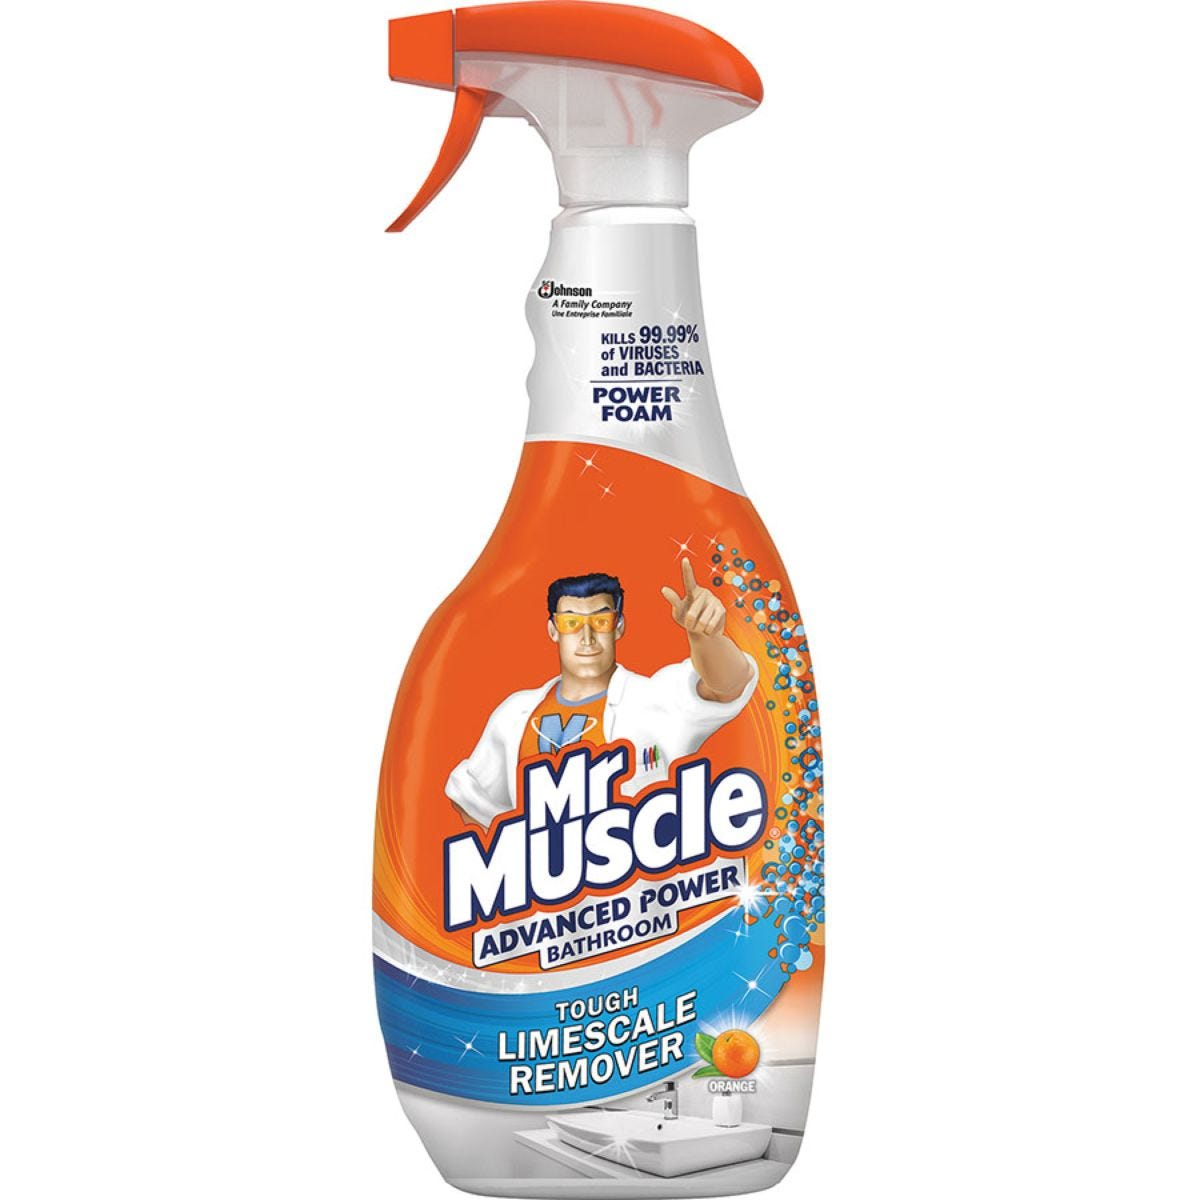 Mr Muscle 750ml Advanced Power Bathroom Spray - Orange